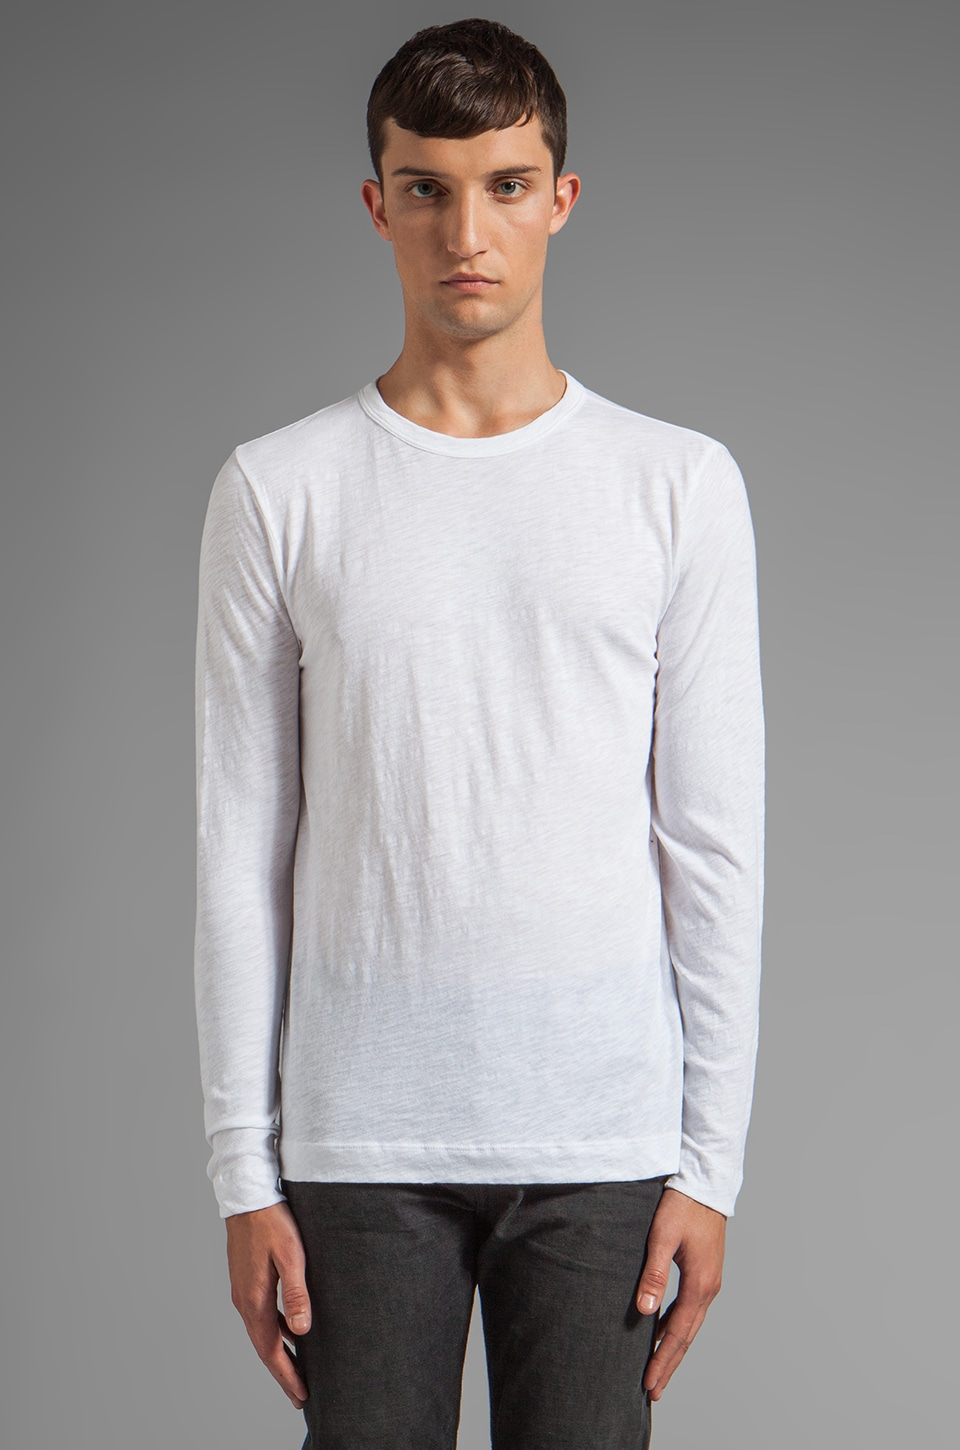 Theory Gaskell NL Tee in White